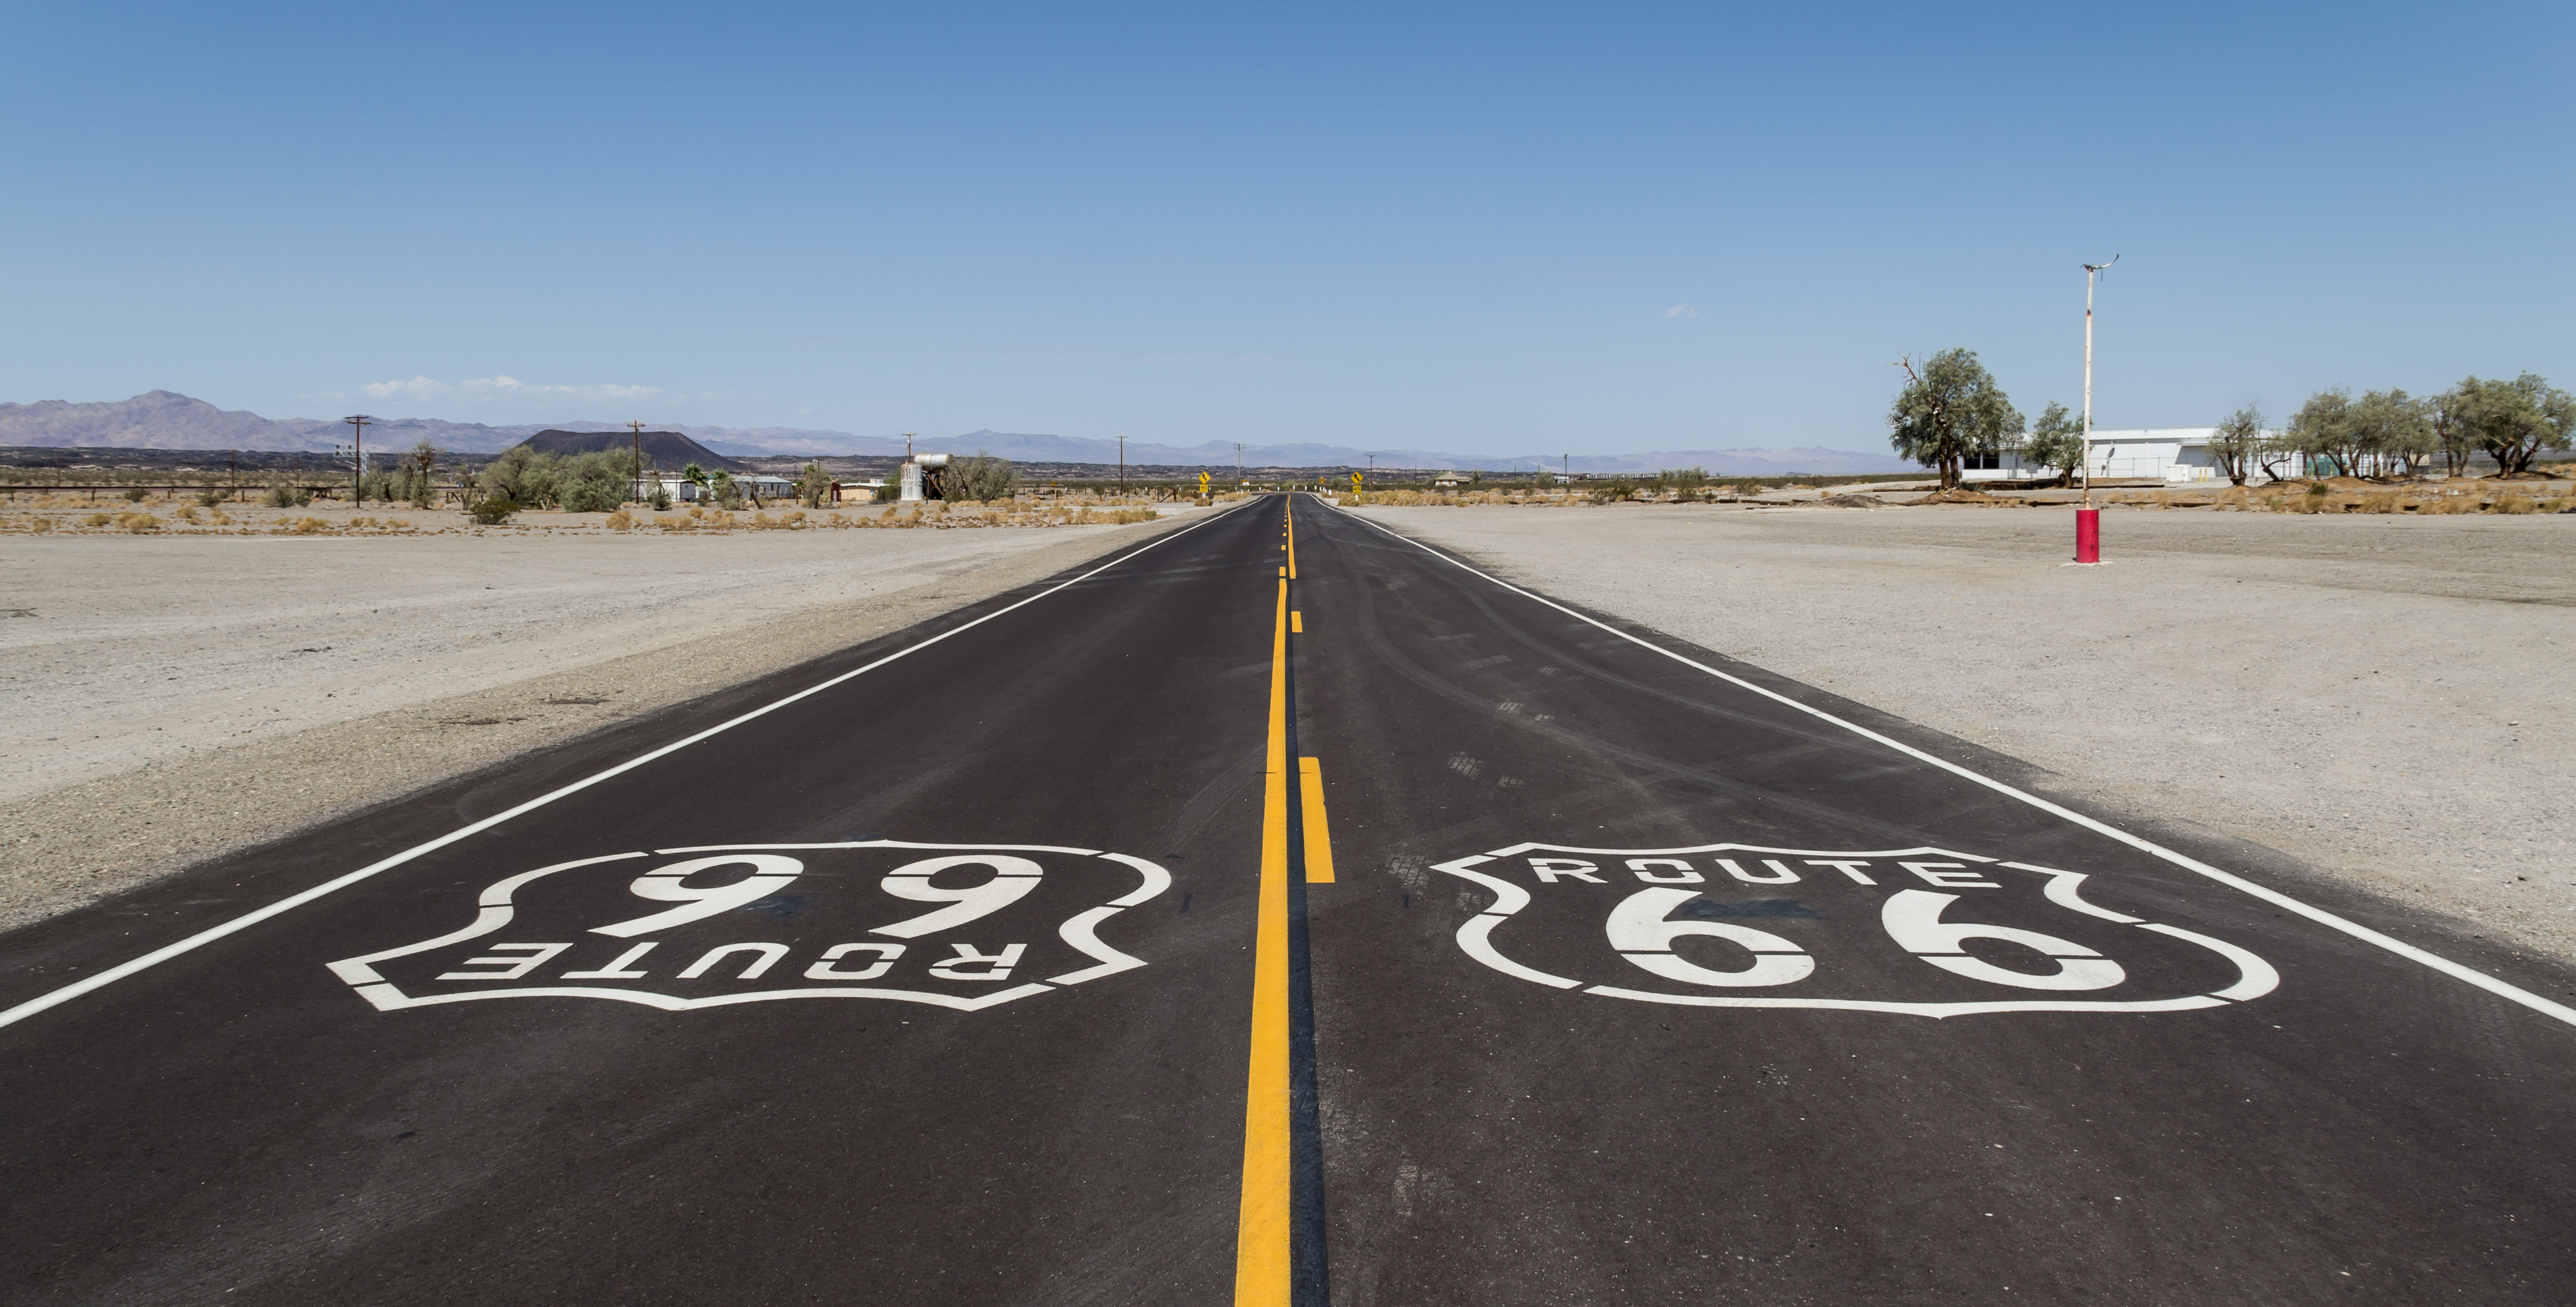 file amboy california usa hist route 66 2012 1 jpg